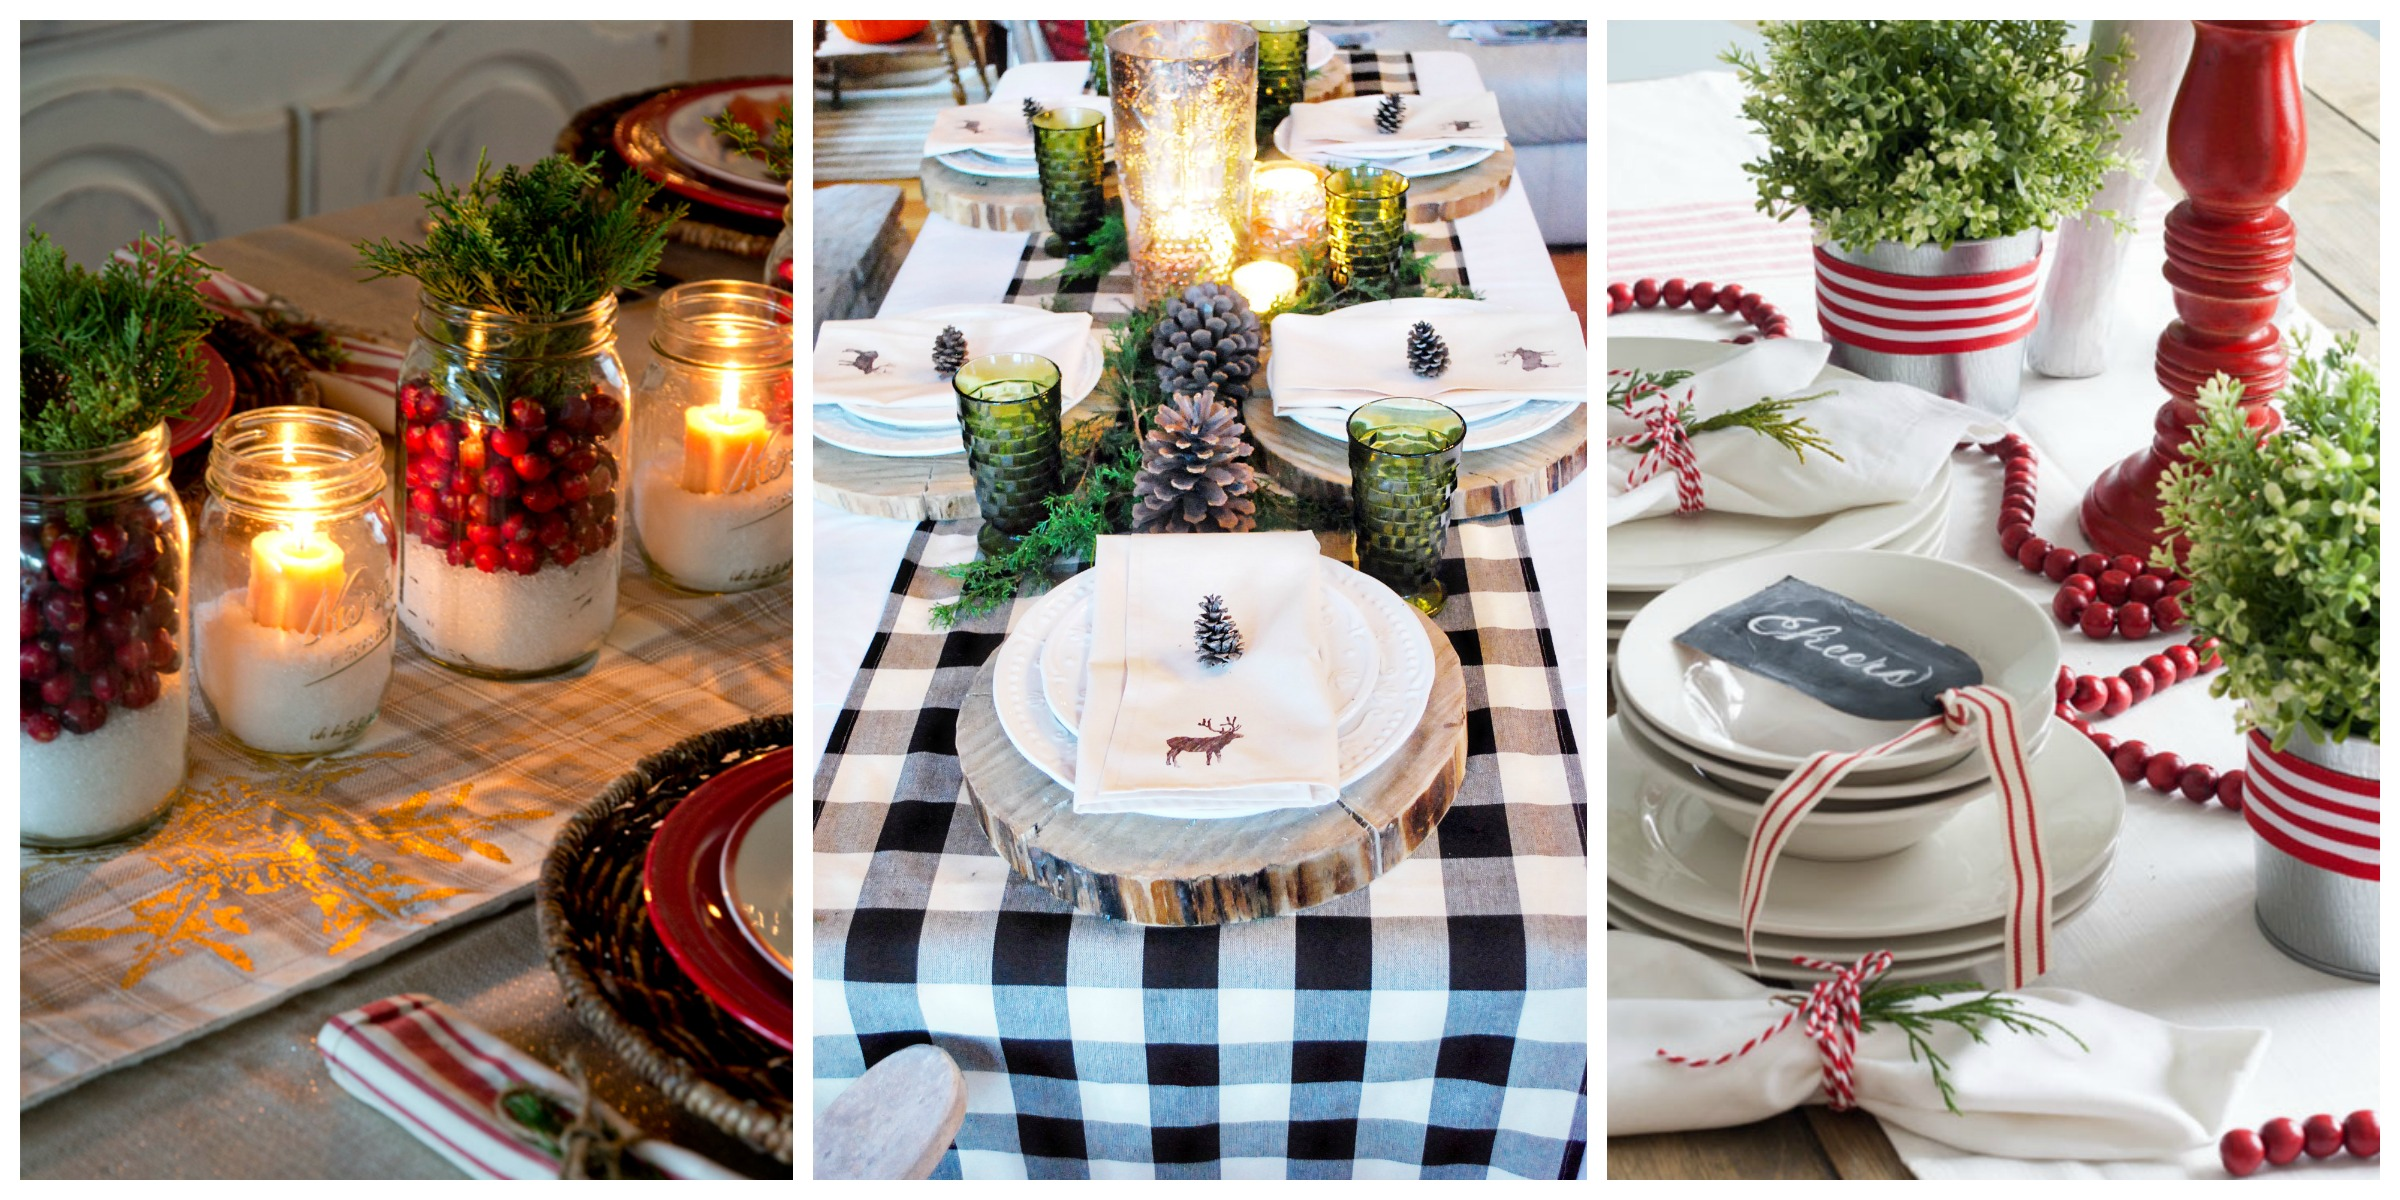 Christmas table decorations centerpieces ideas for